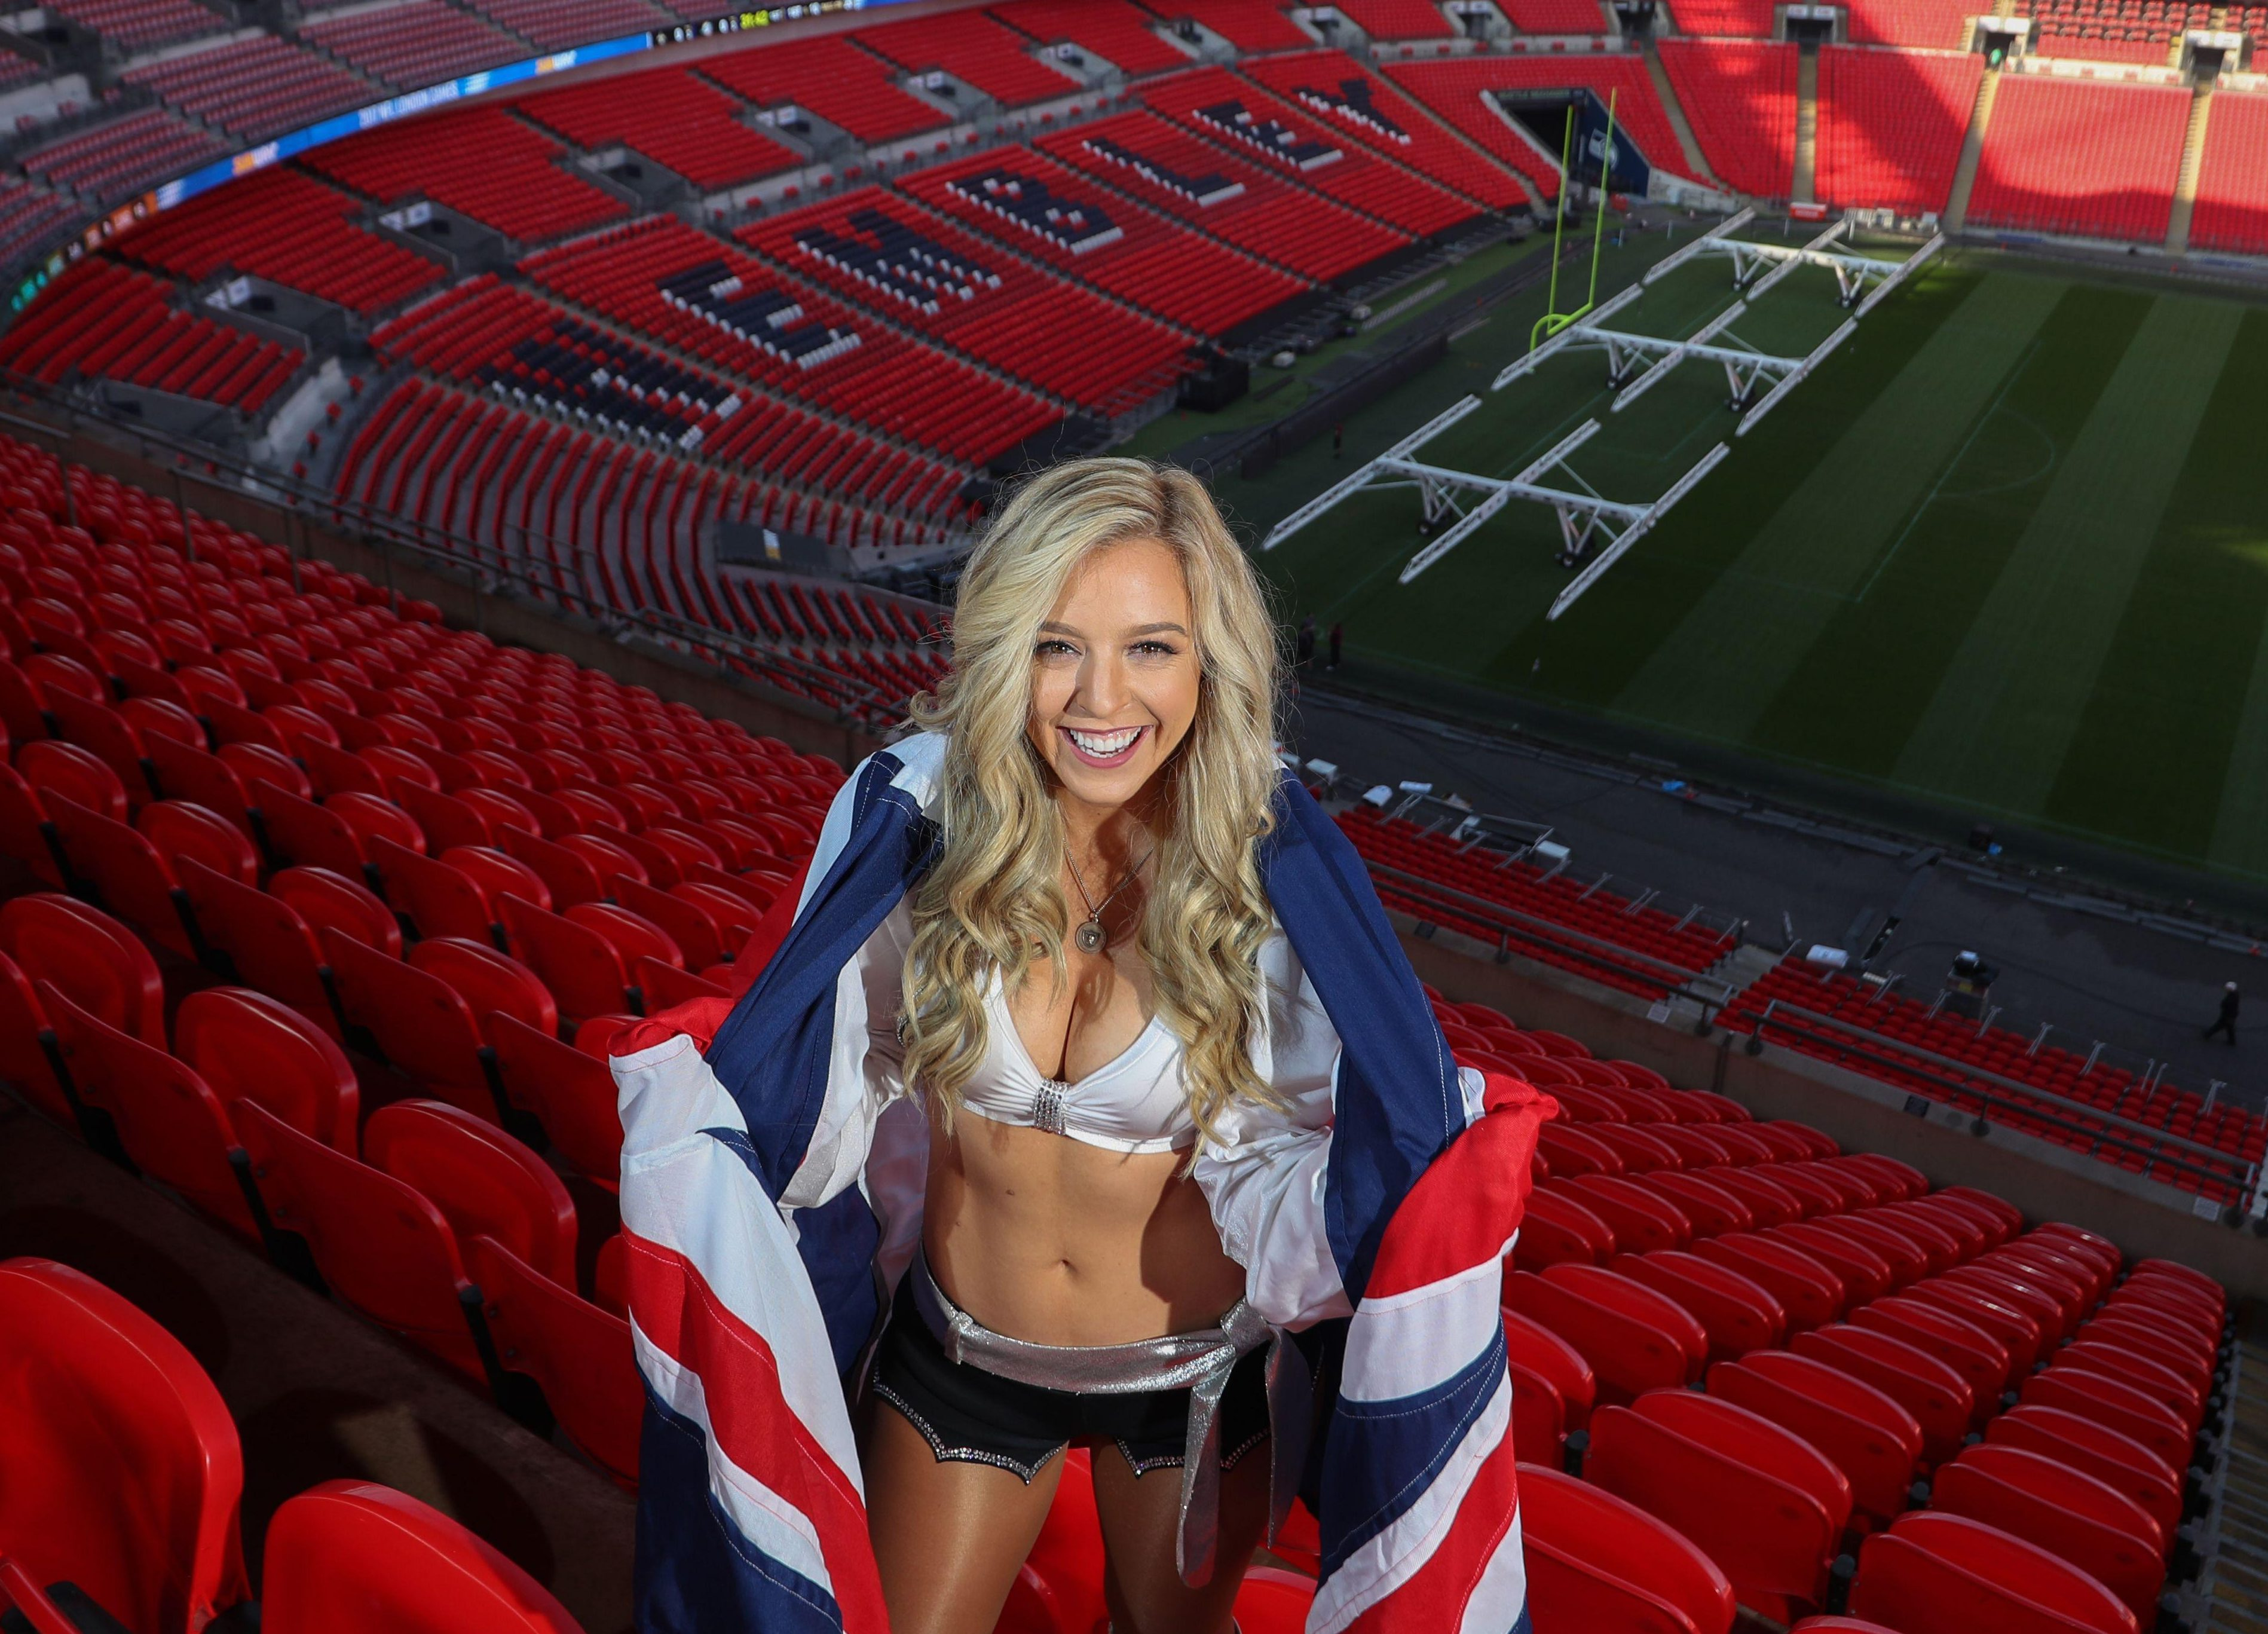 The Raiderettes will be hoping the Oakland Raiders can banish their London form